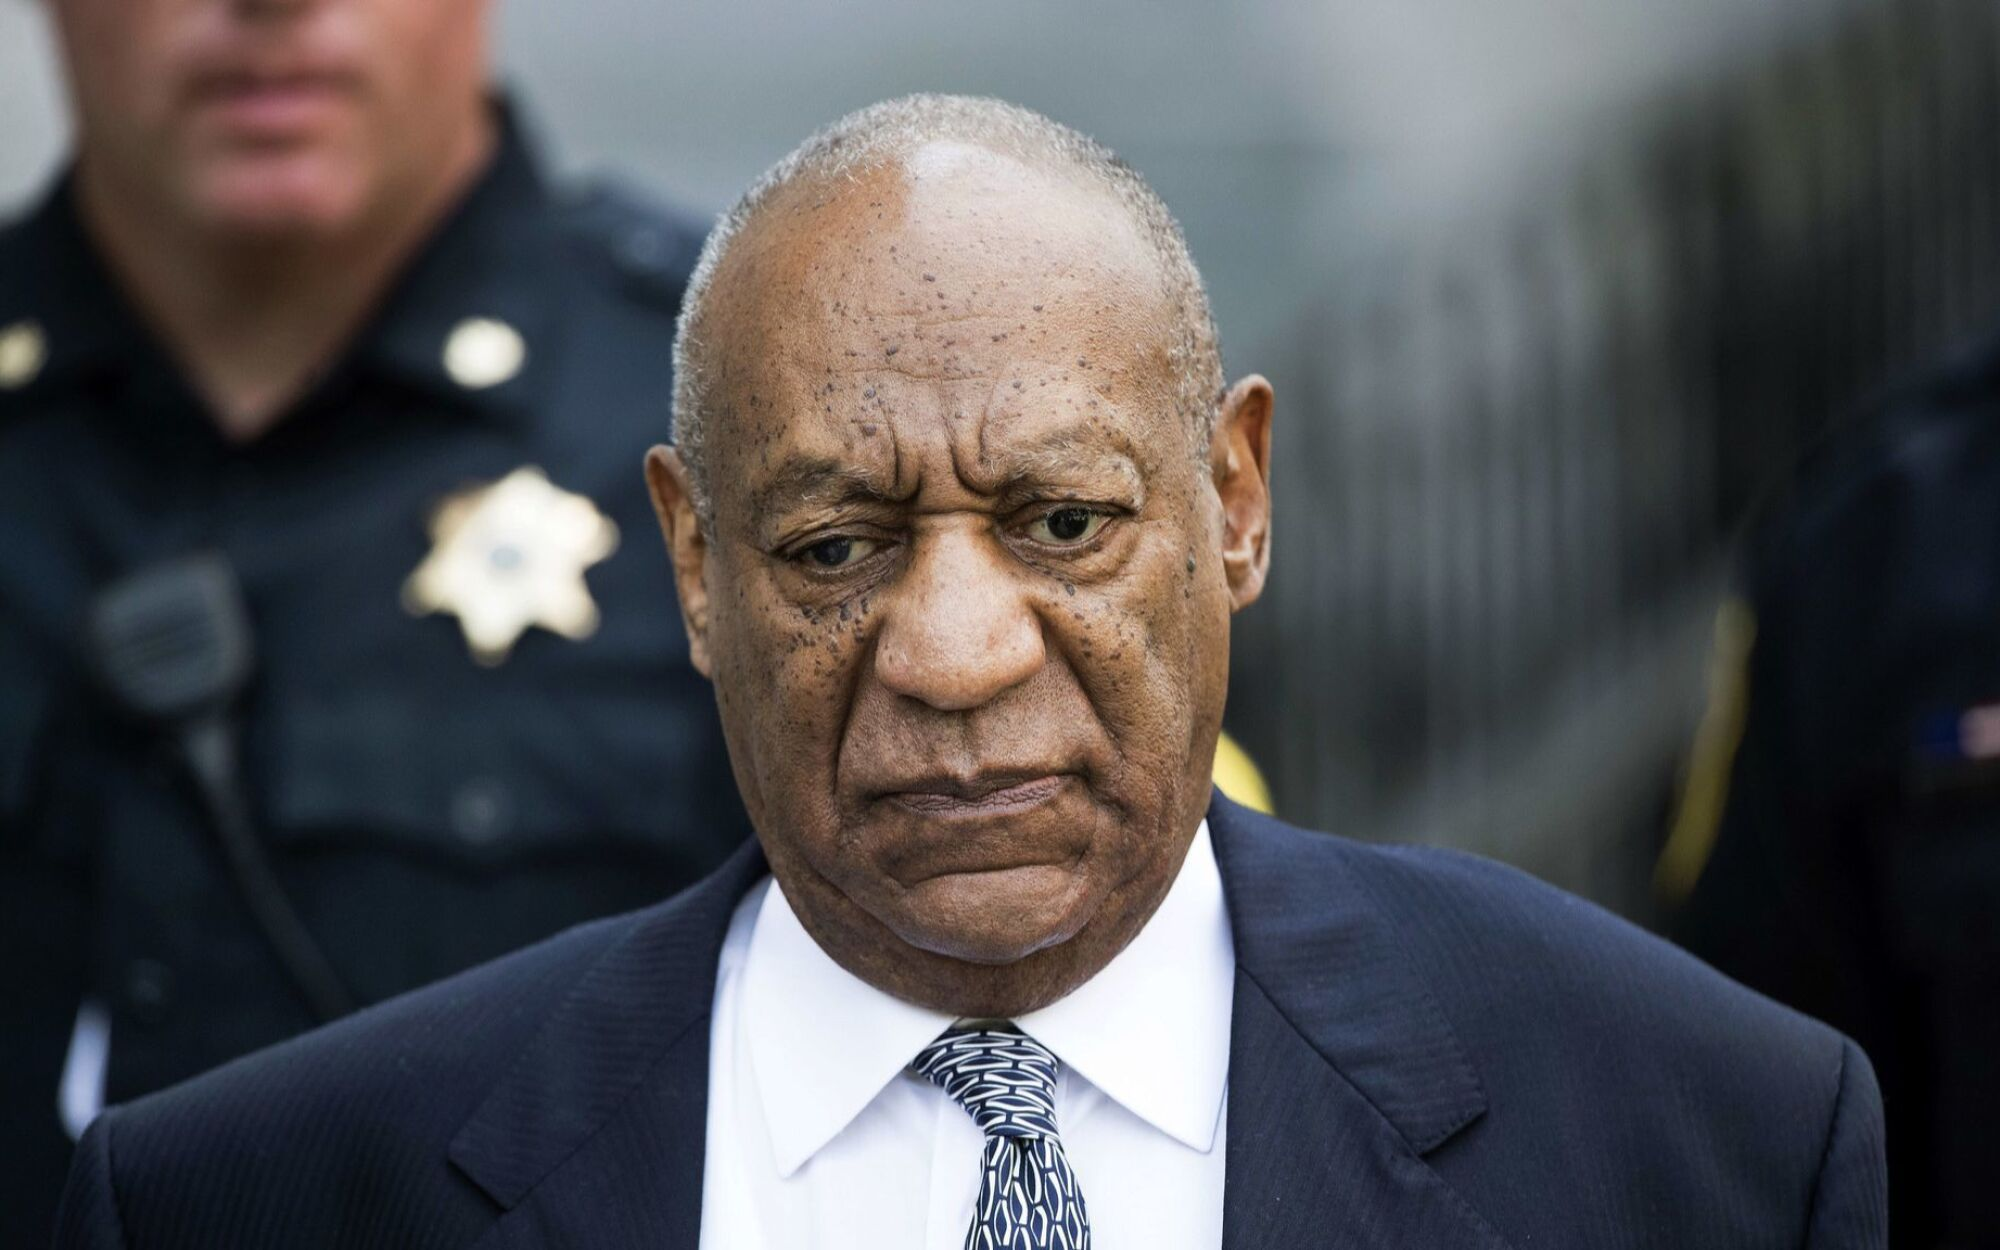 Bill Cosby leaves after a hearing in his sexual assault case in Norristown, Pa., in 2017.